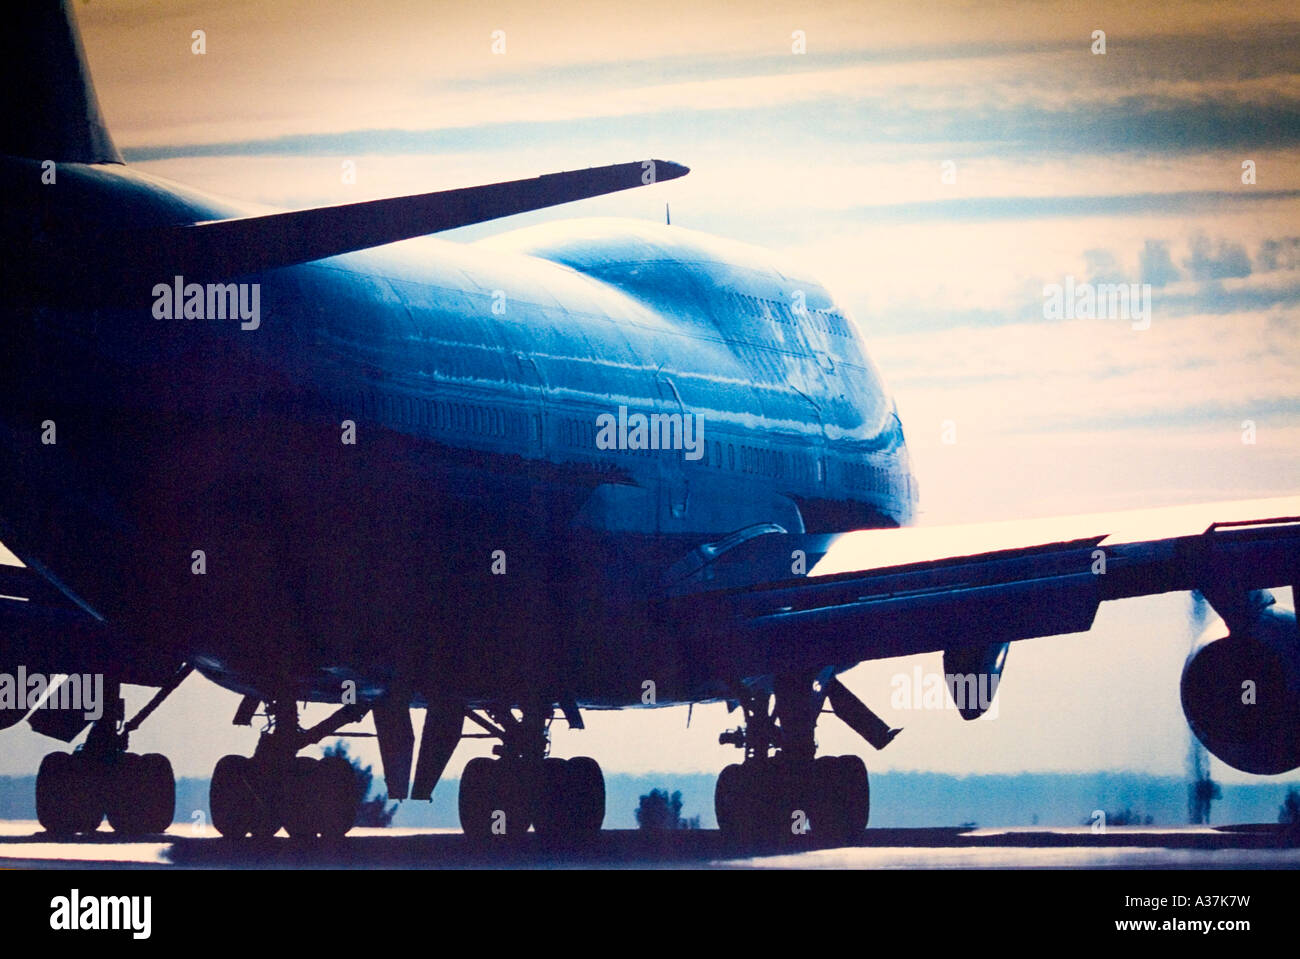 Reportage jet plane on runway photo digital copy airport wall photo Luxor Airport Luxor Egypt North Africa - Stock Image